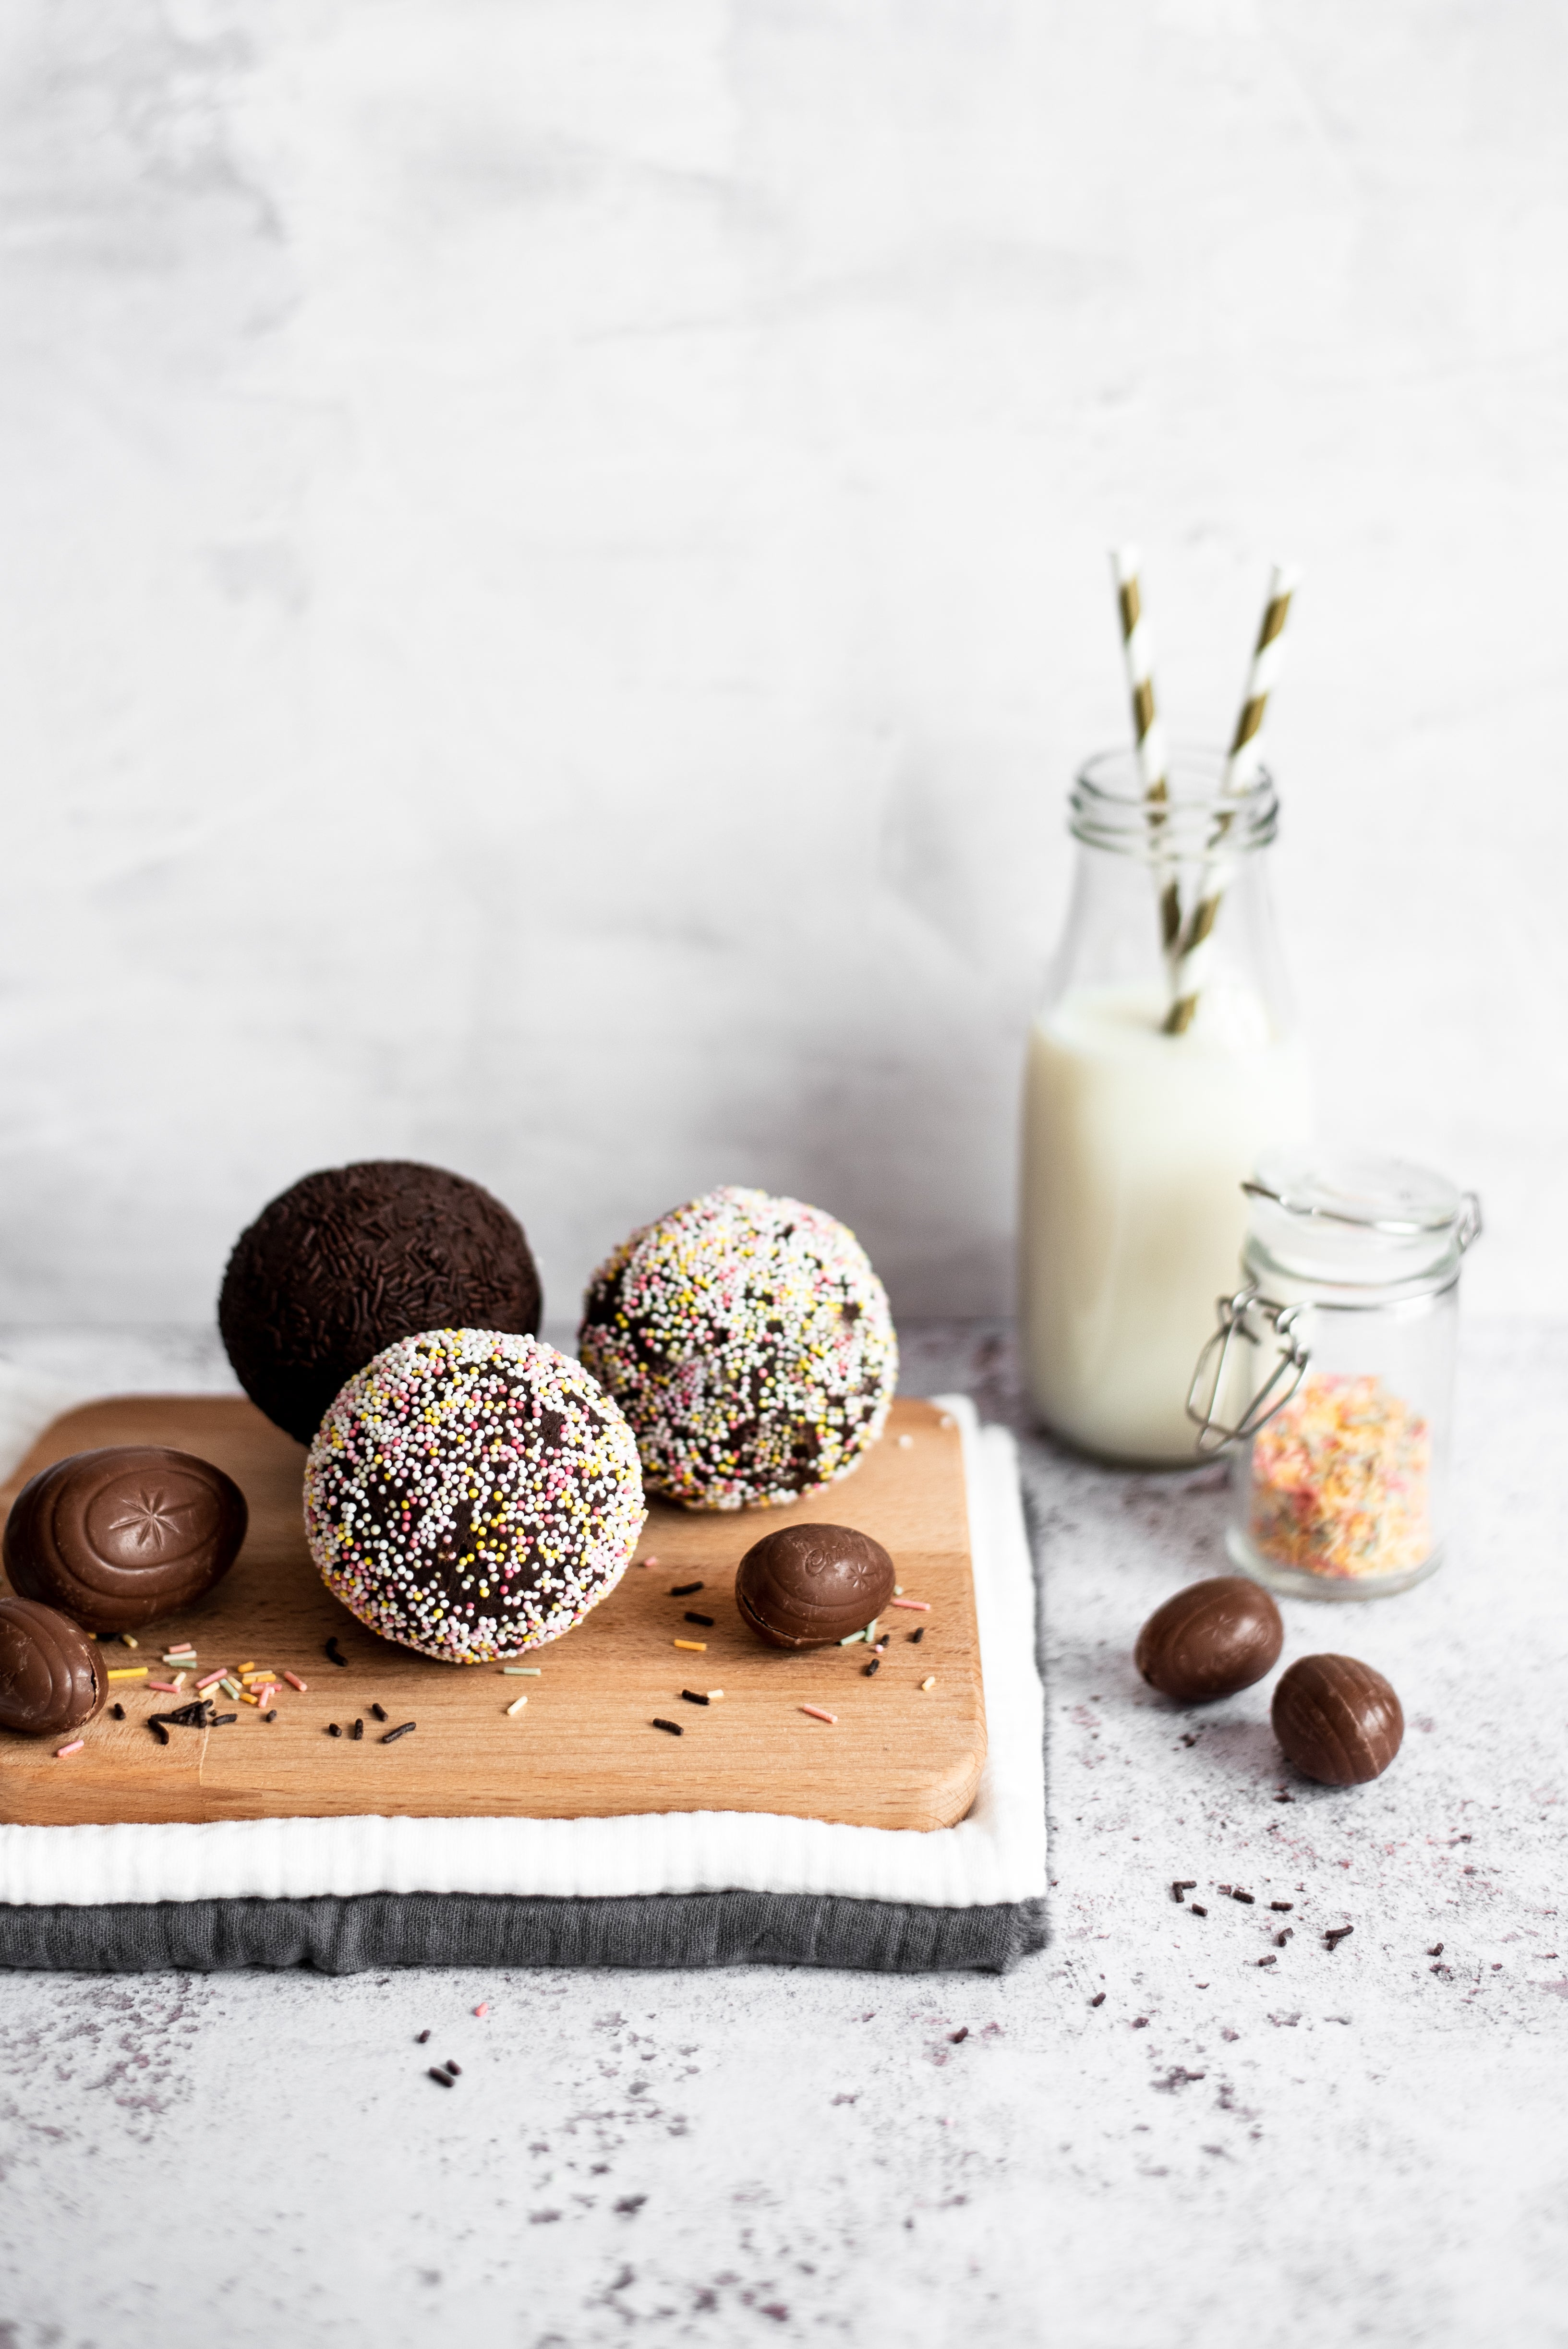 chocolate scotch eggs on a wooden board